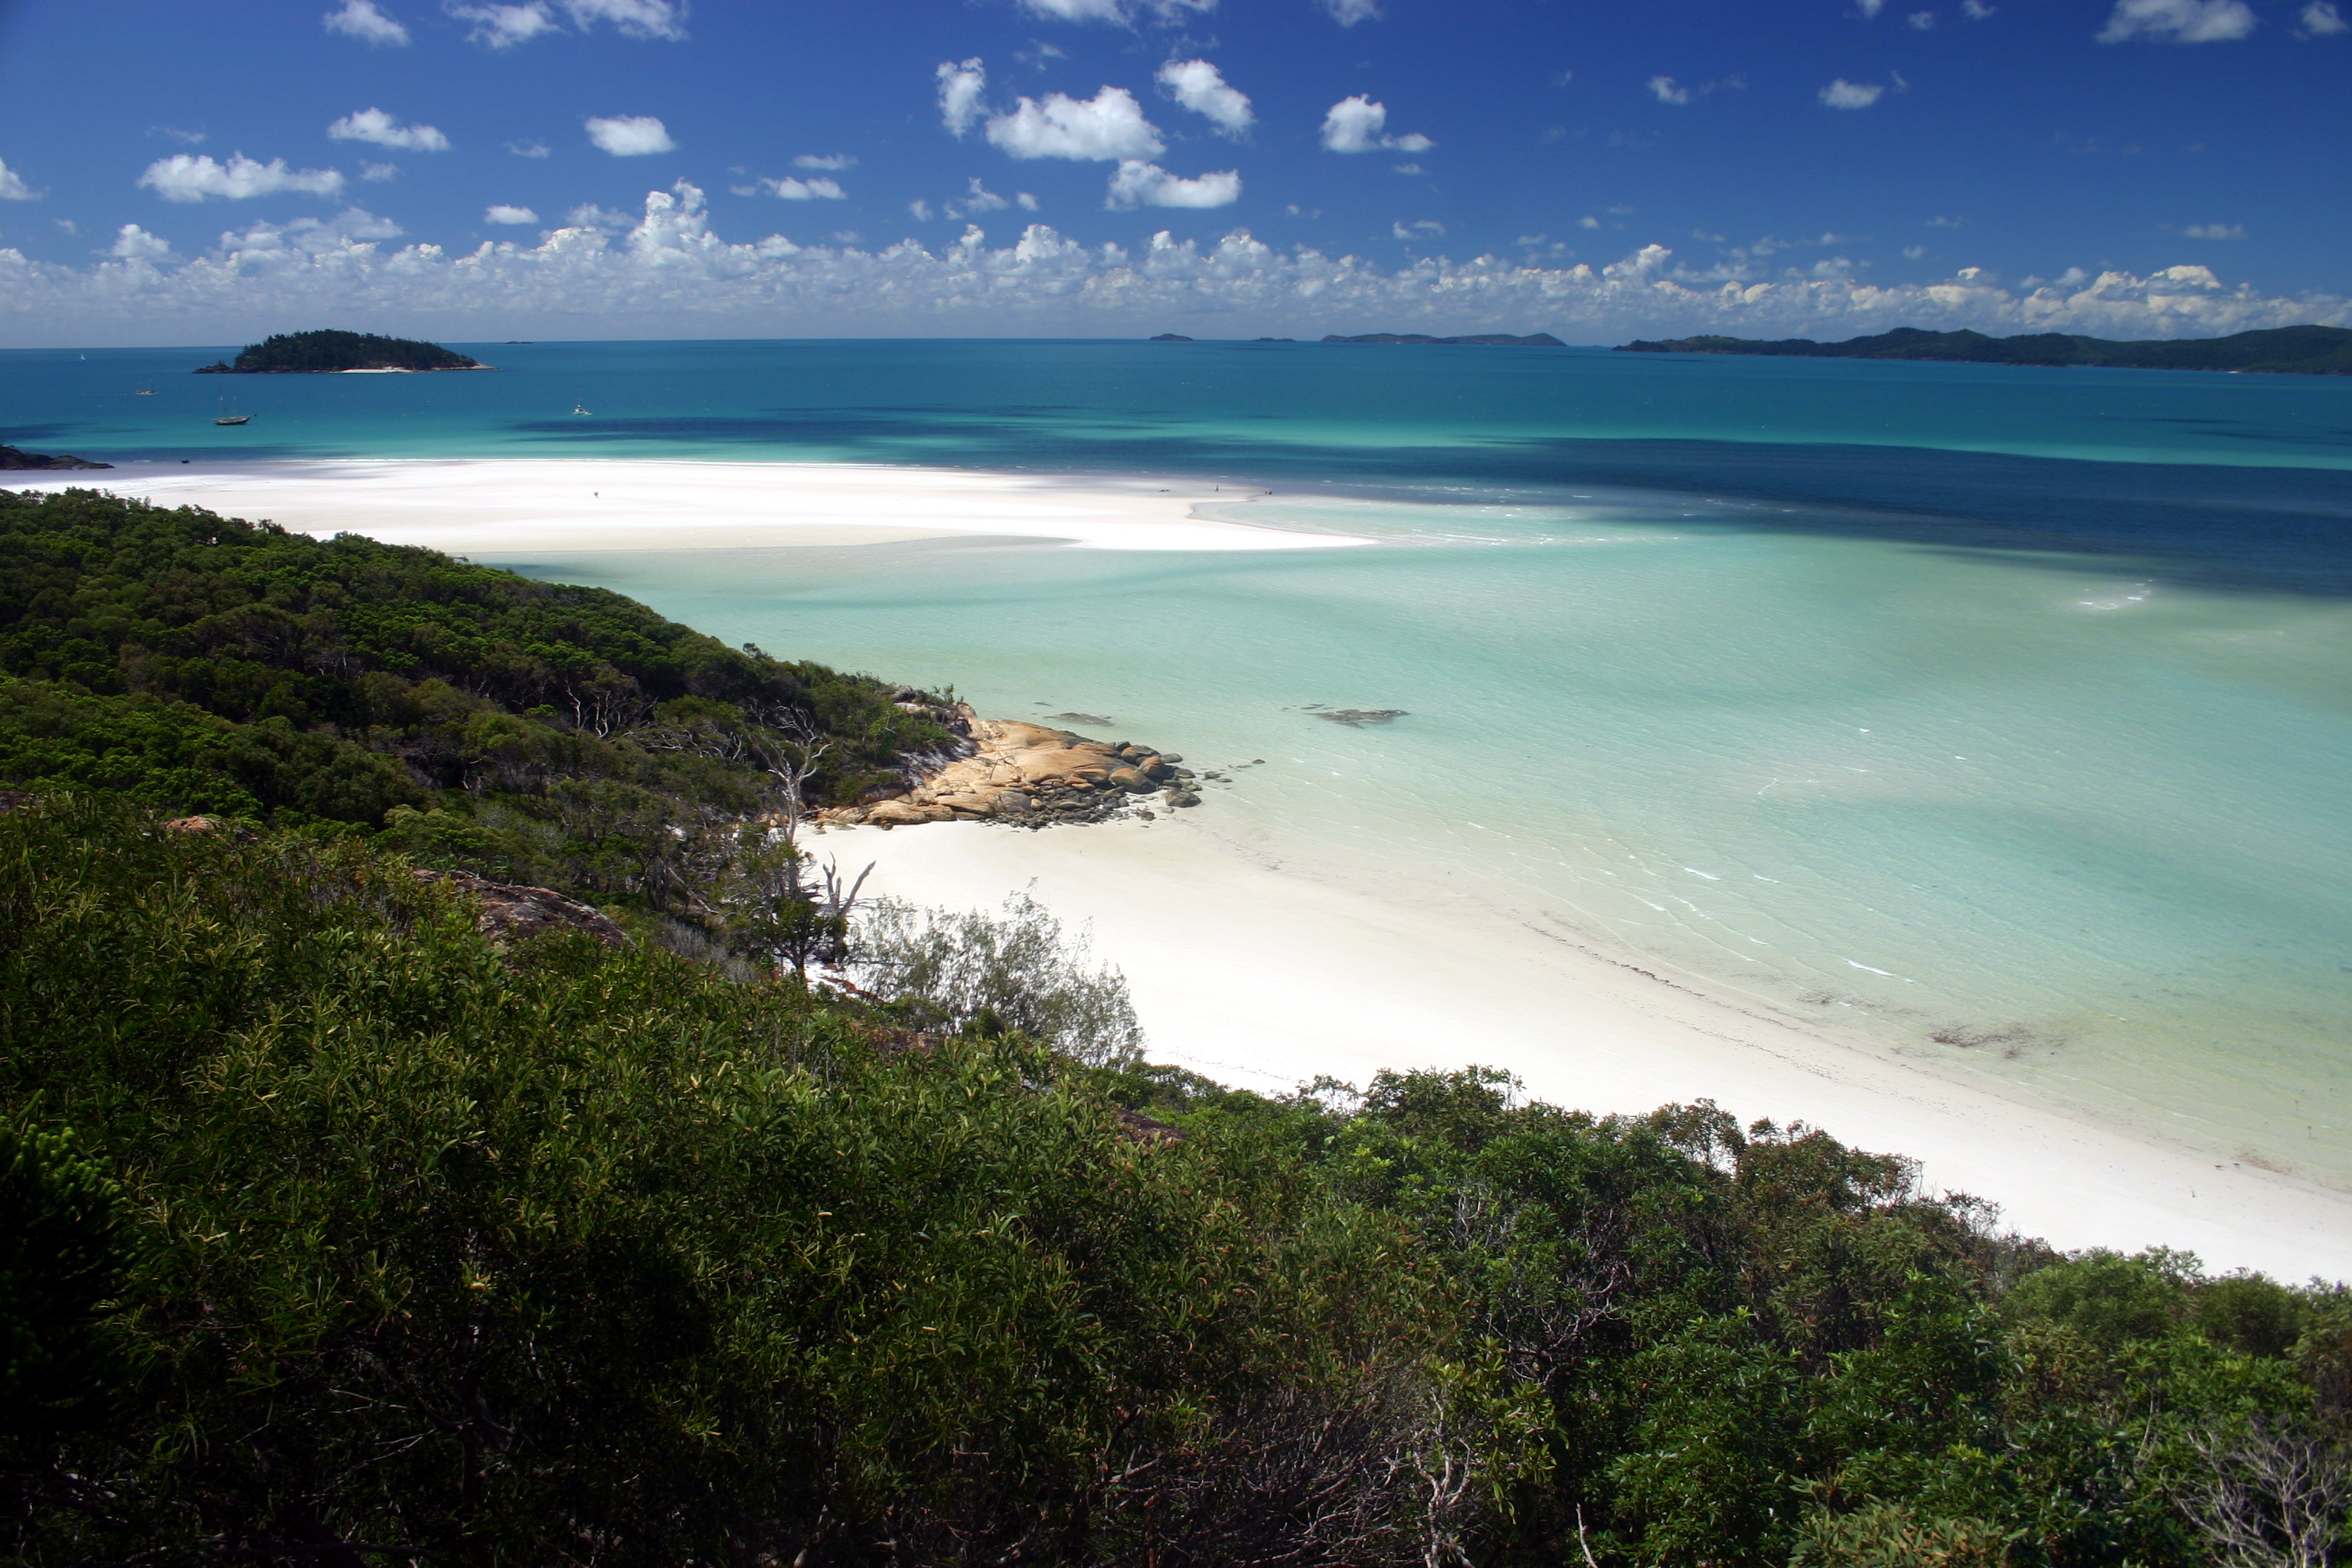 Whitsunday_Island_-_Whitehaven_Beach_01